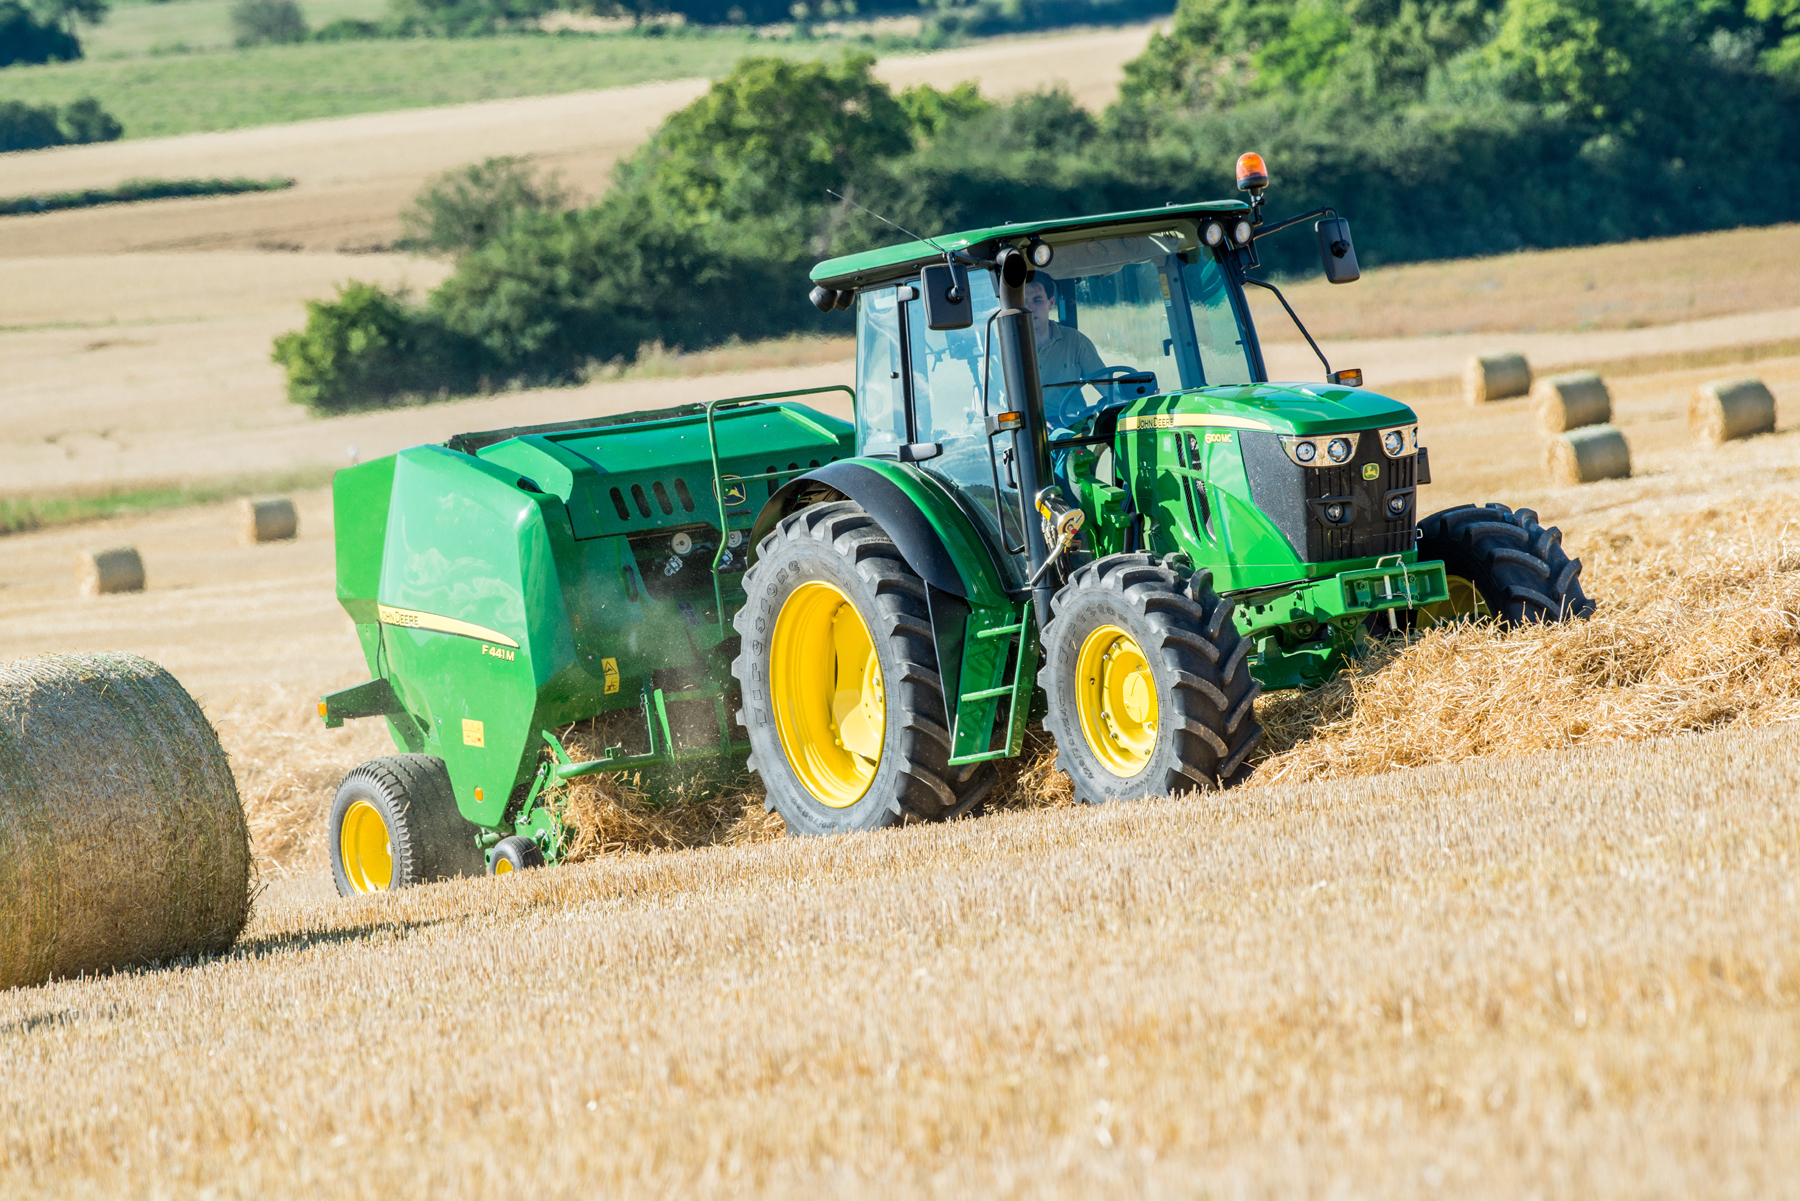 Straw is bringing record prices